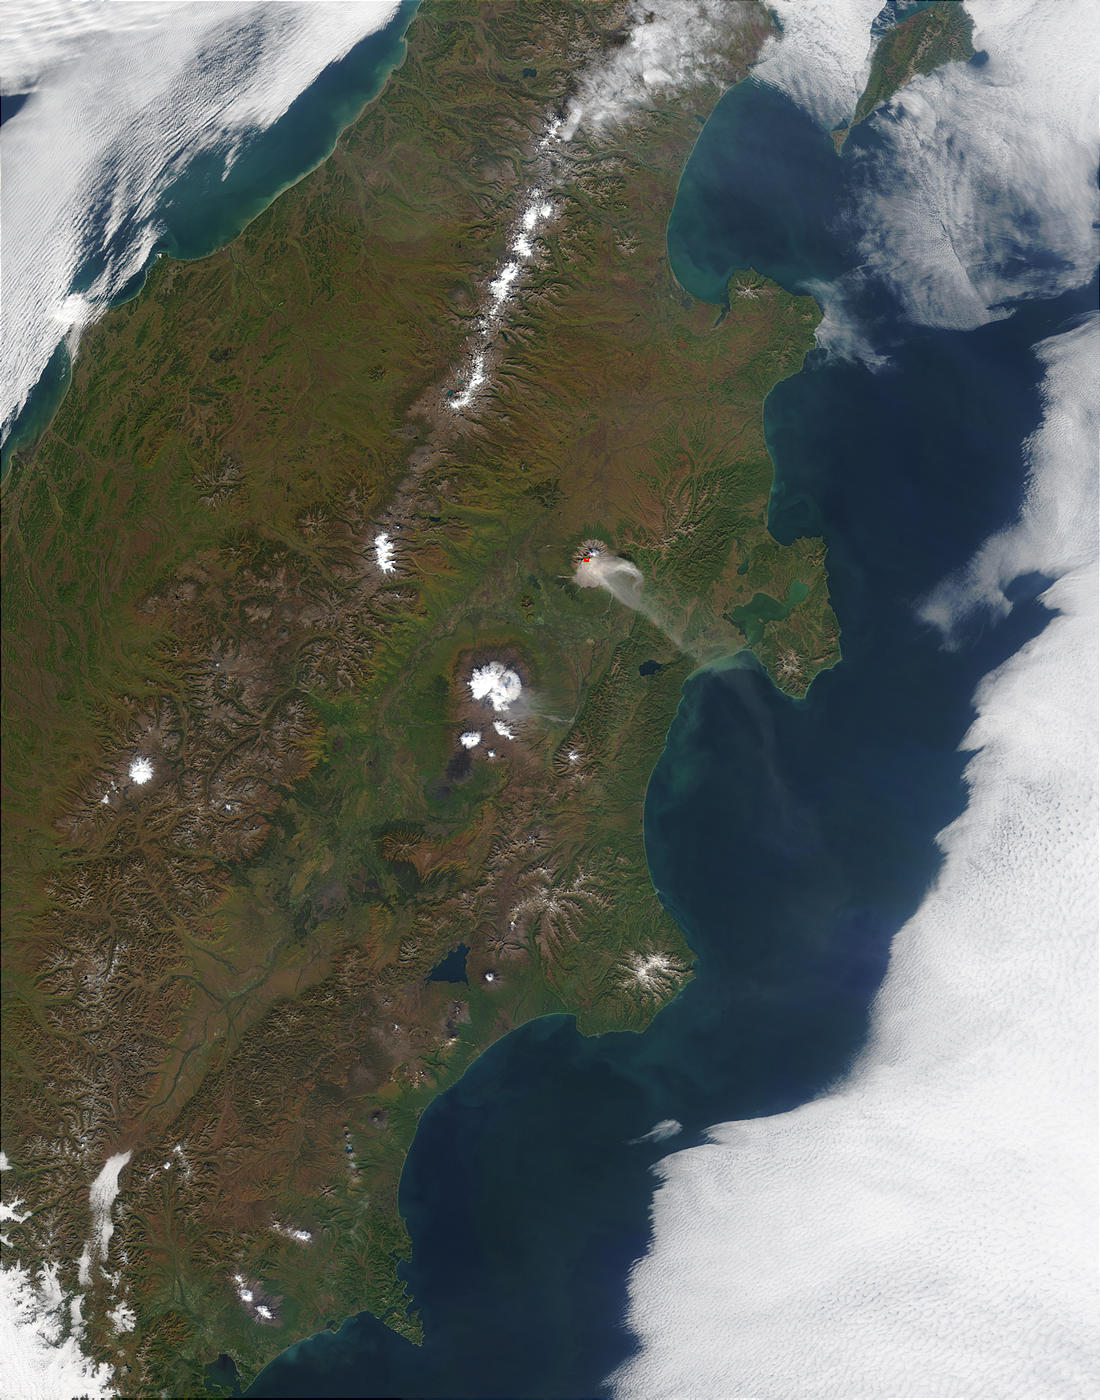 Ash plume rising from Shiveluch Volcano, Kamchatka Peninsula, Eastern Russia - related image preview